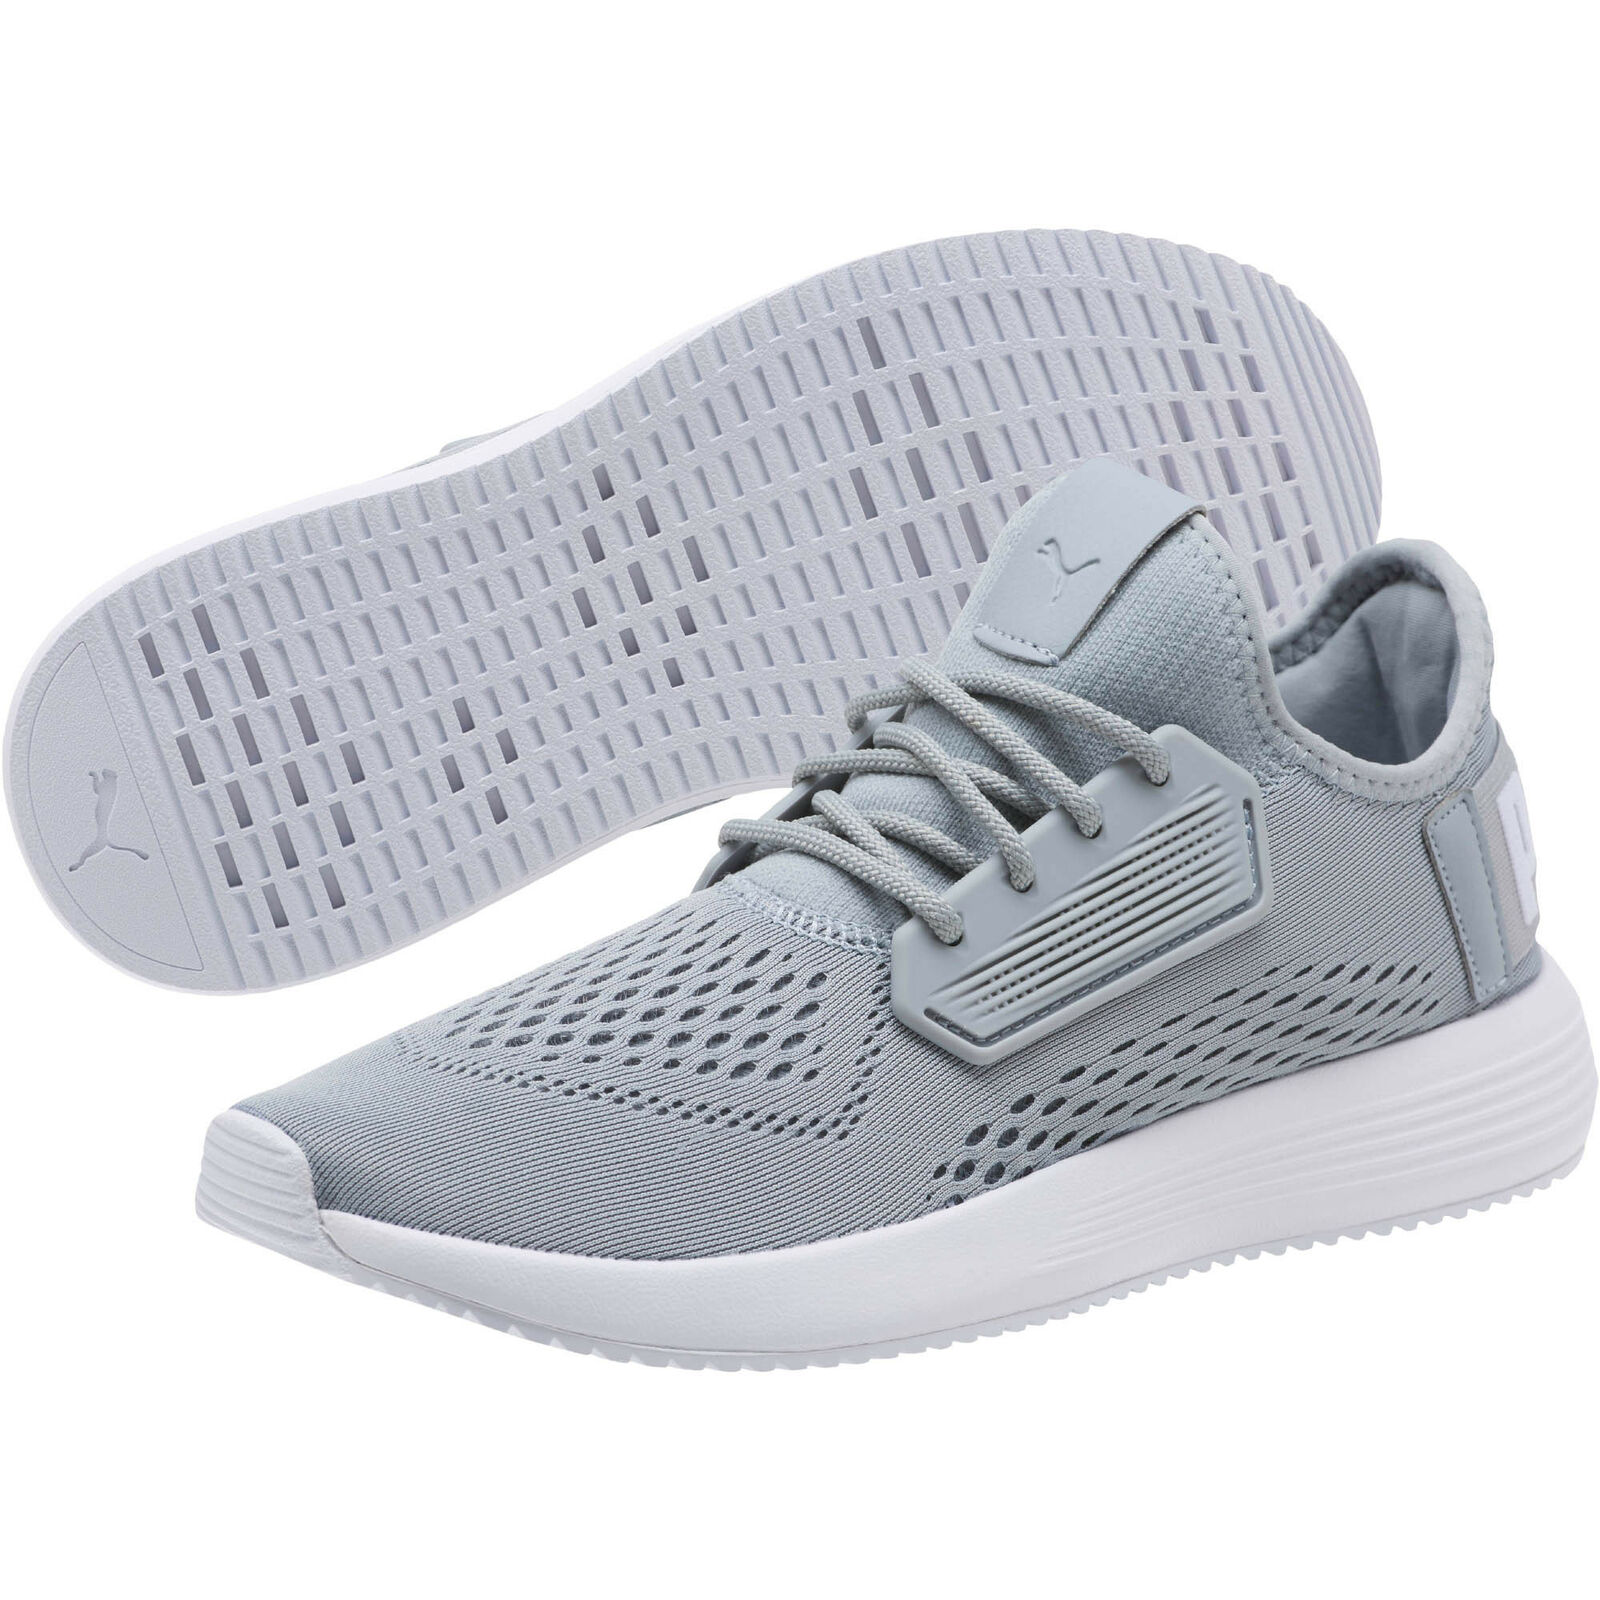 PUMA Uprise Mesh Men's Sneakers Men Shoe Evolution